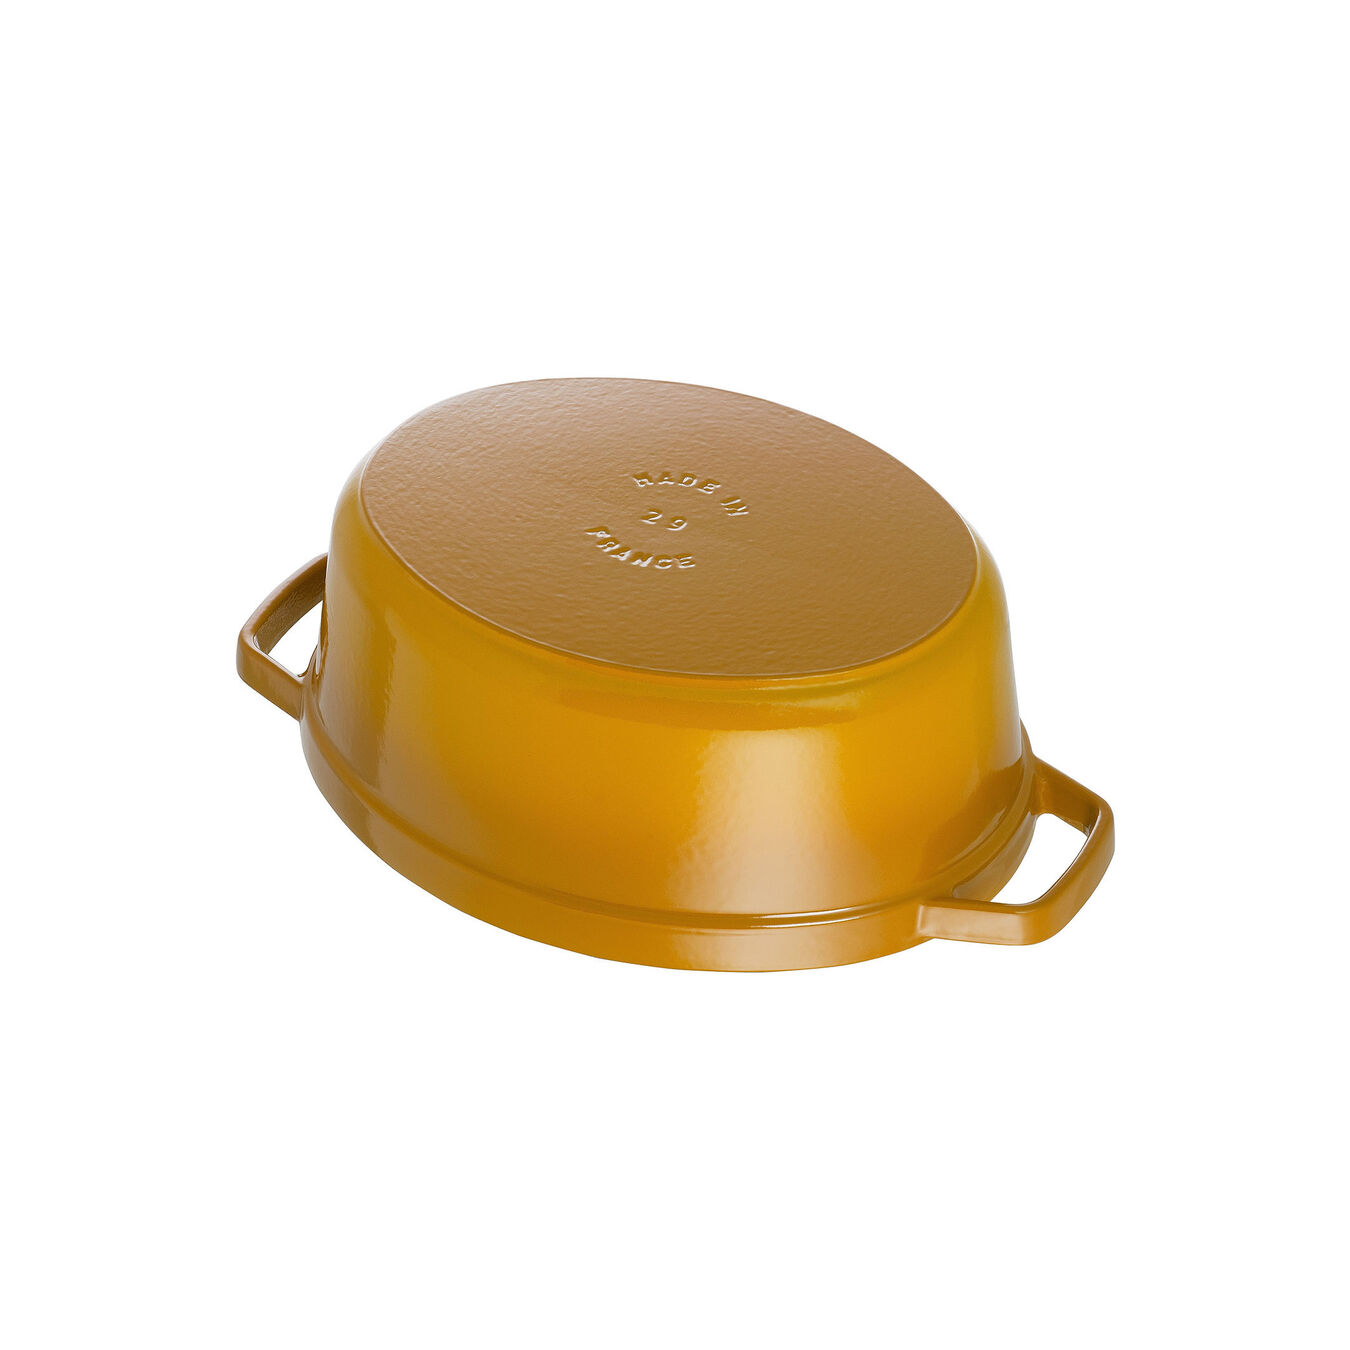 5.5 l oval Cocotte, mustard,,large 4